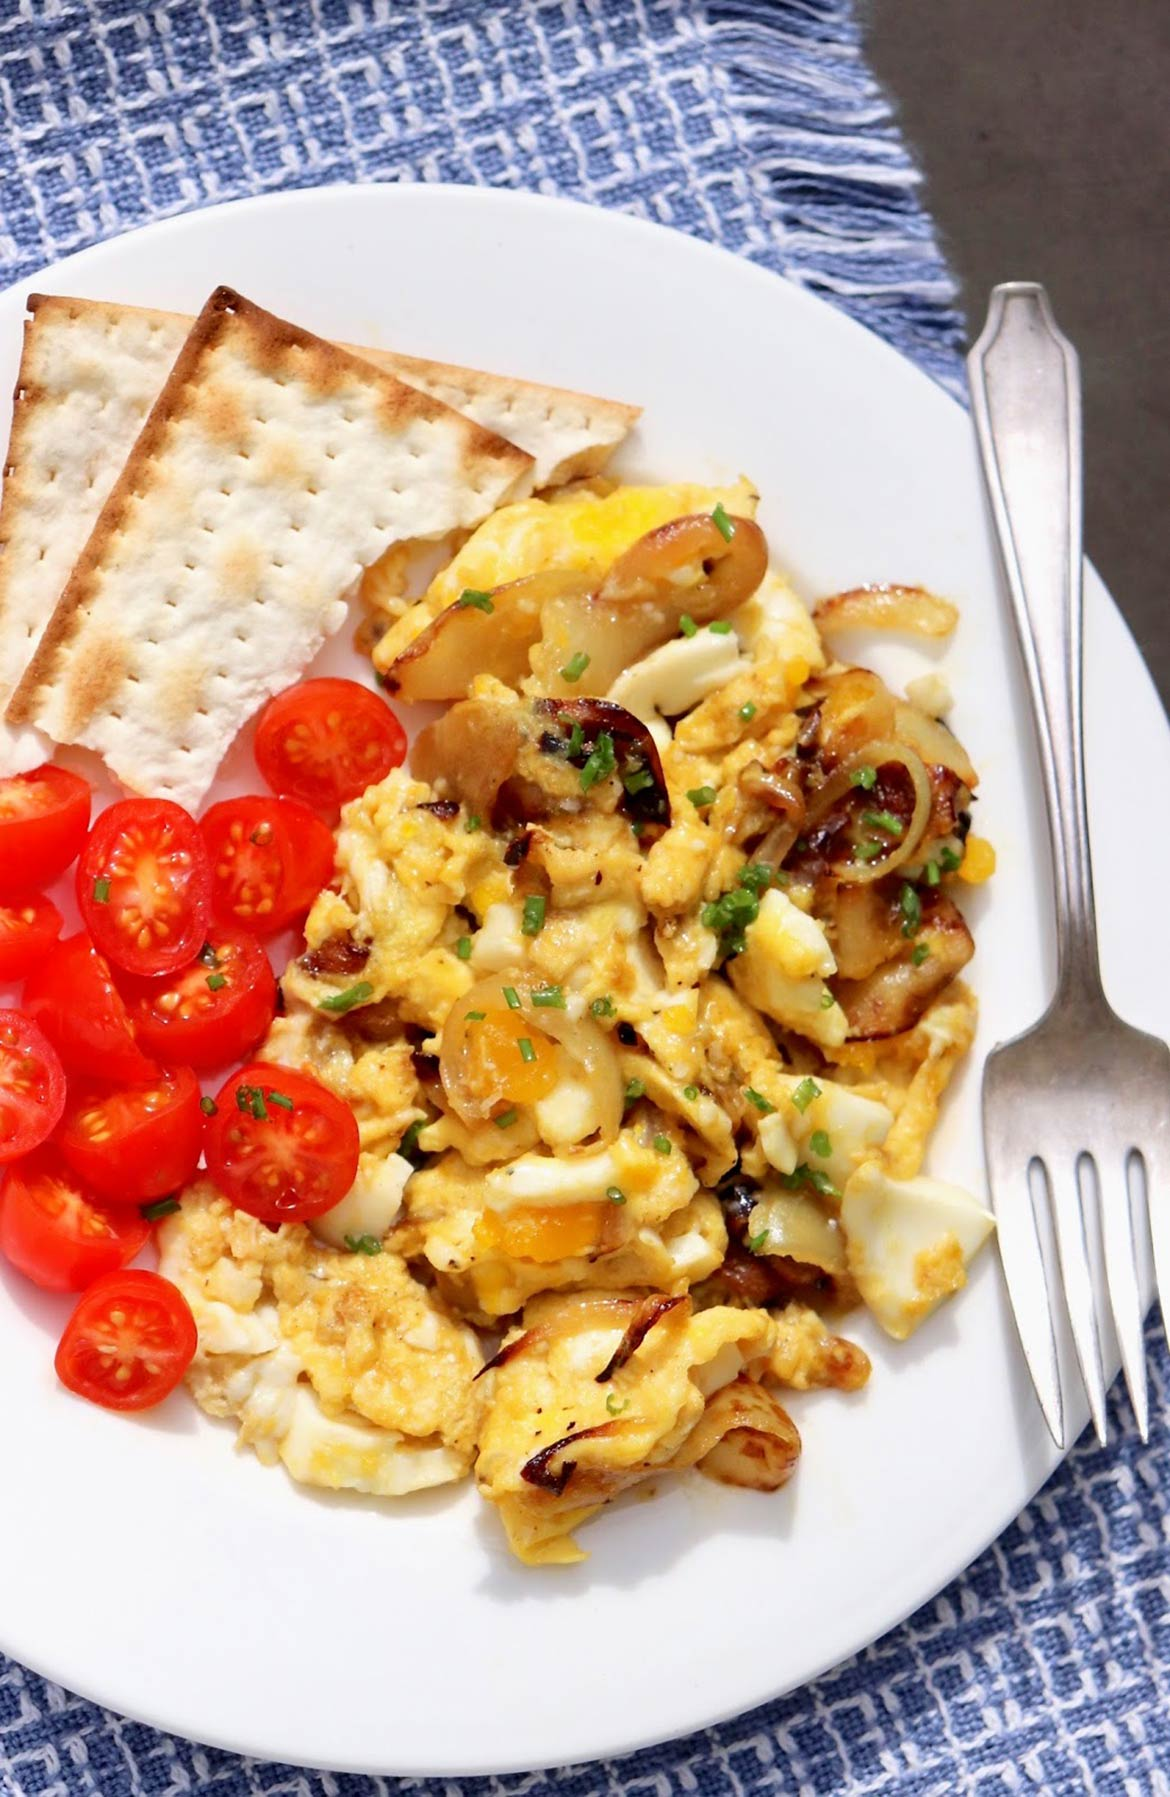 Scrambled eggs with a welcome twist!